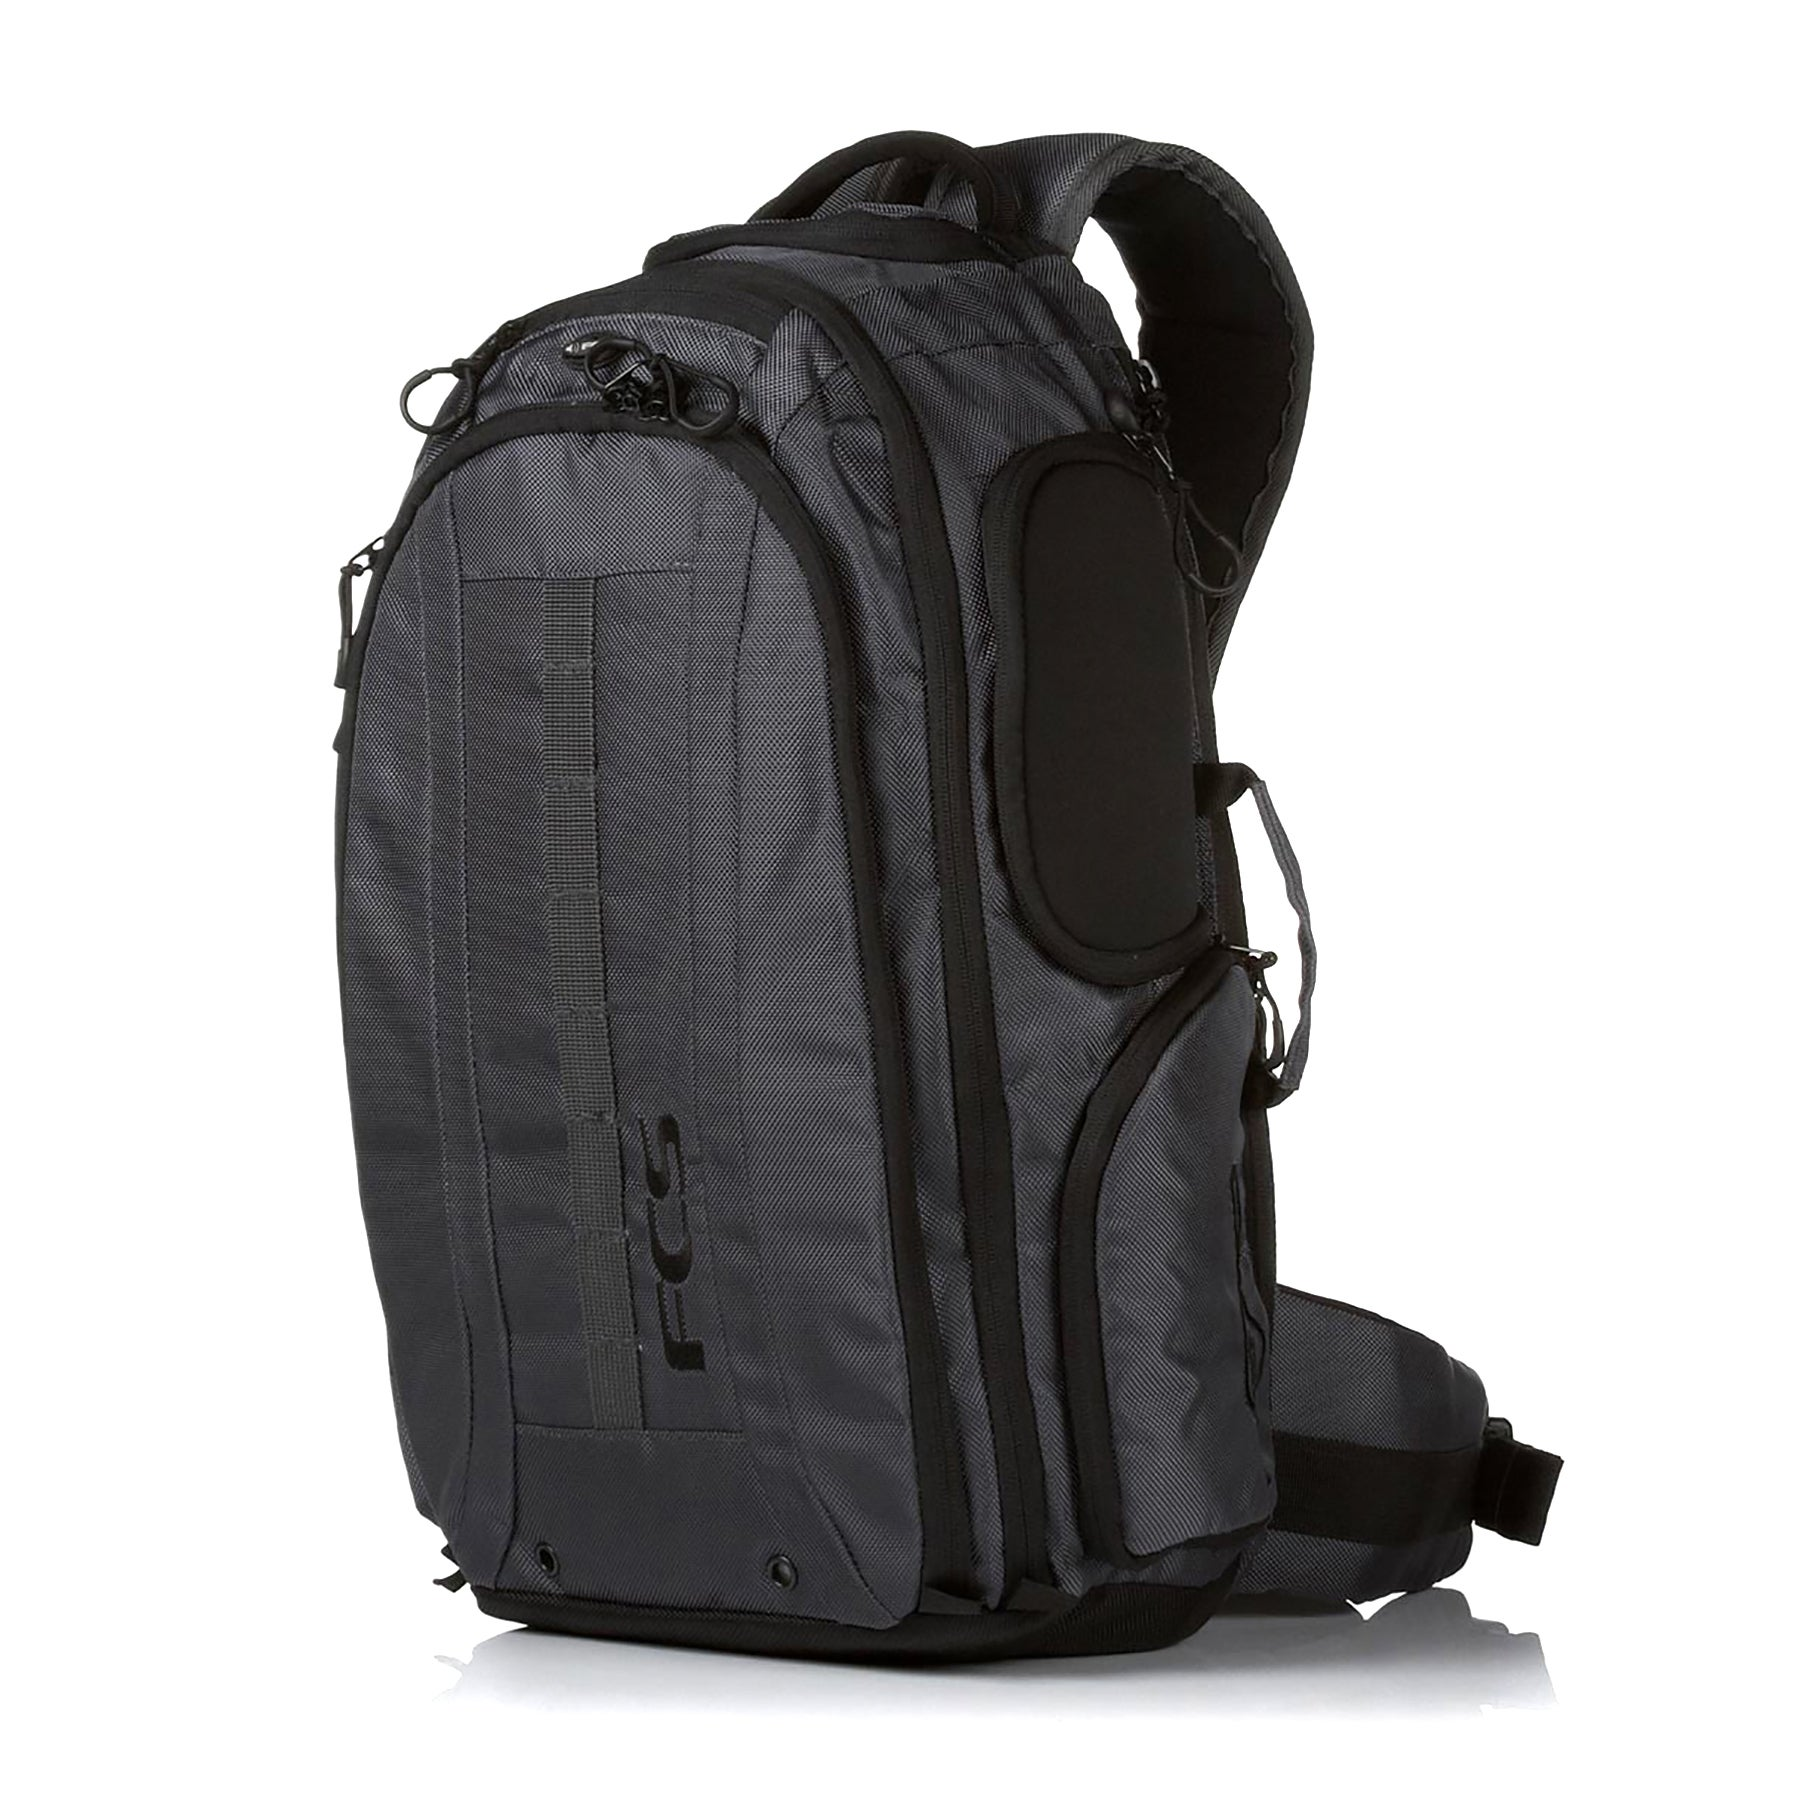 FCS Mission Premium Surf Backpack - Black